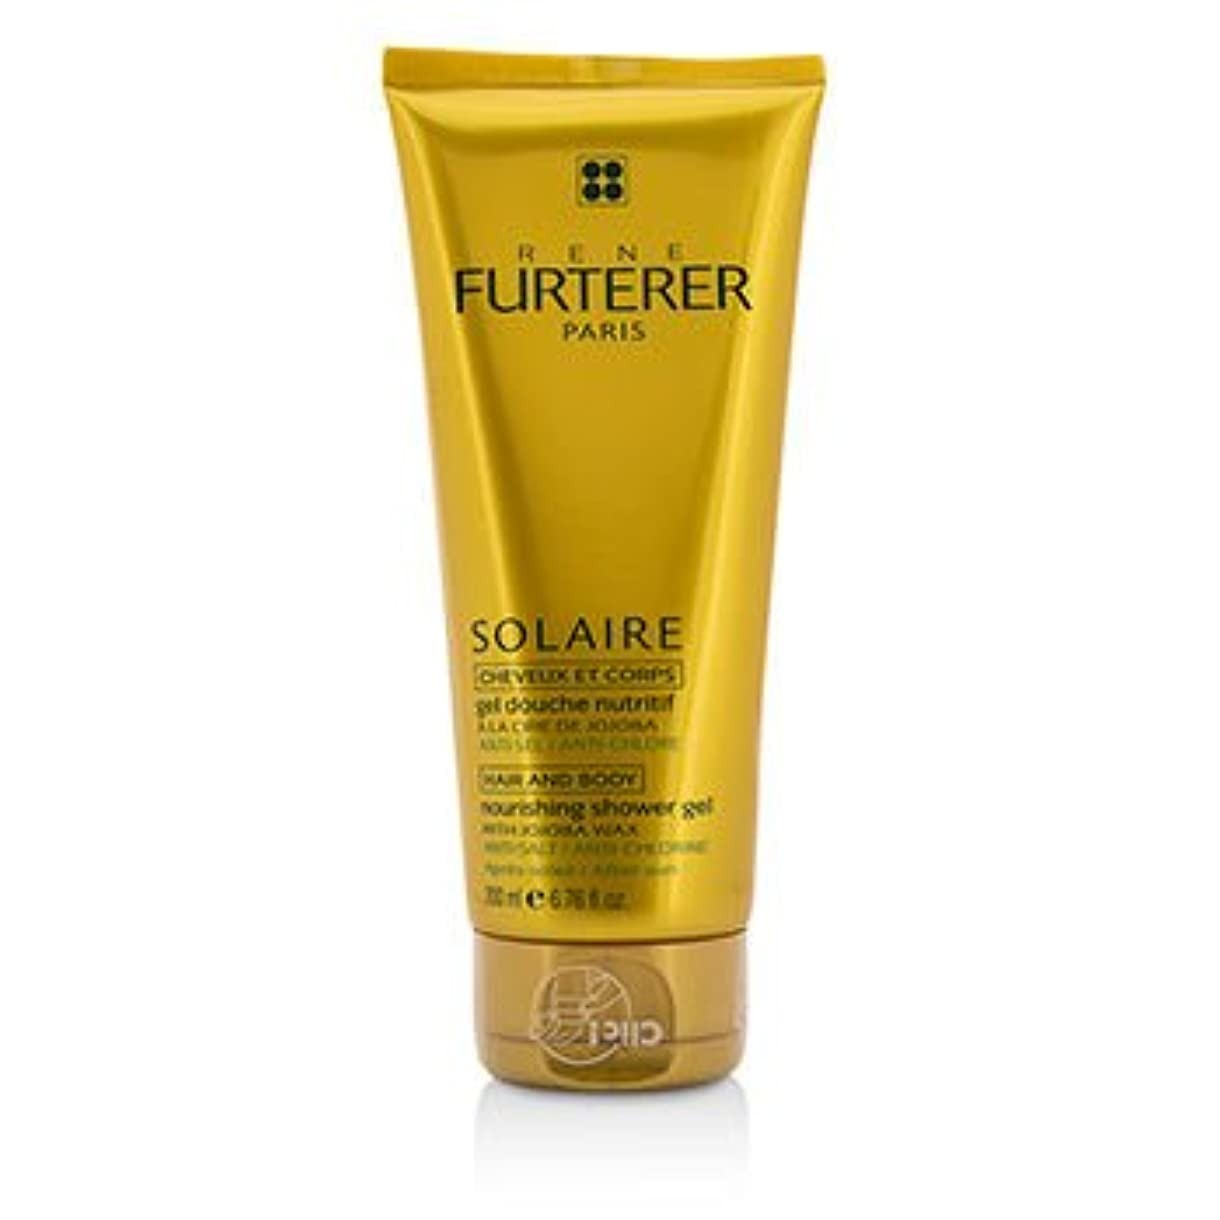 部どんなときもだます[Rene Furterer] Solaire Nourishing Shower Gel with Jojoba Wax (Hair and Body) 200ml/6.76oz